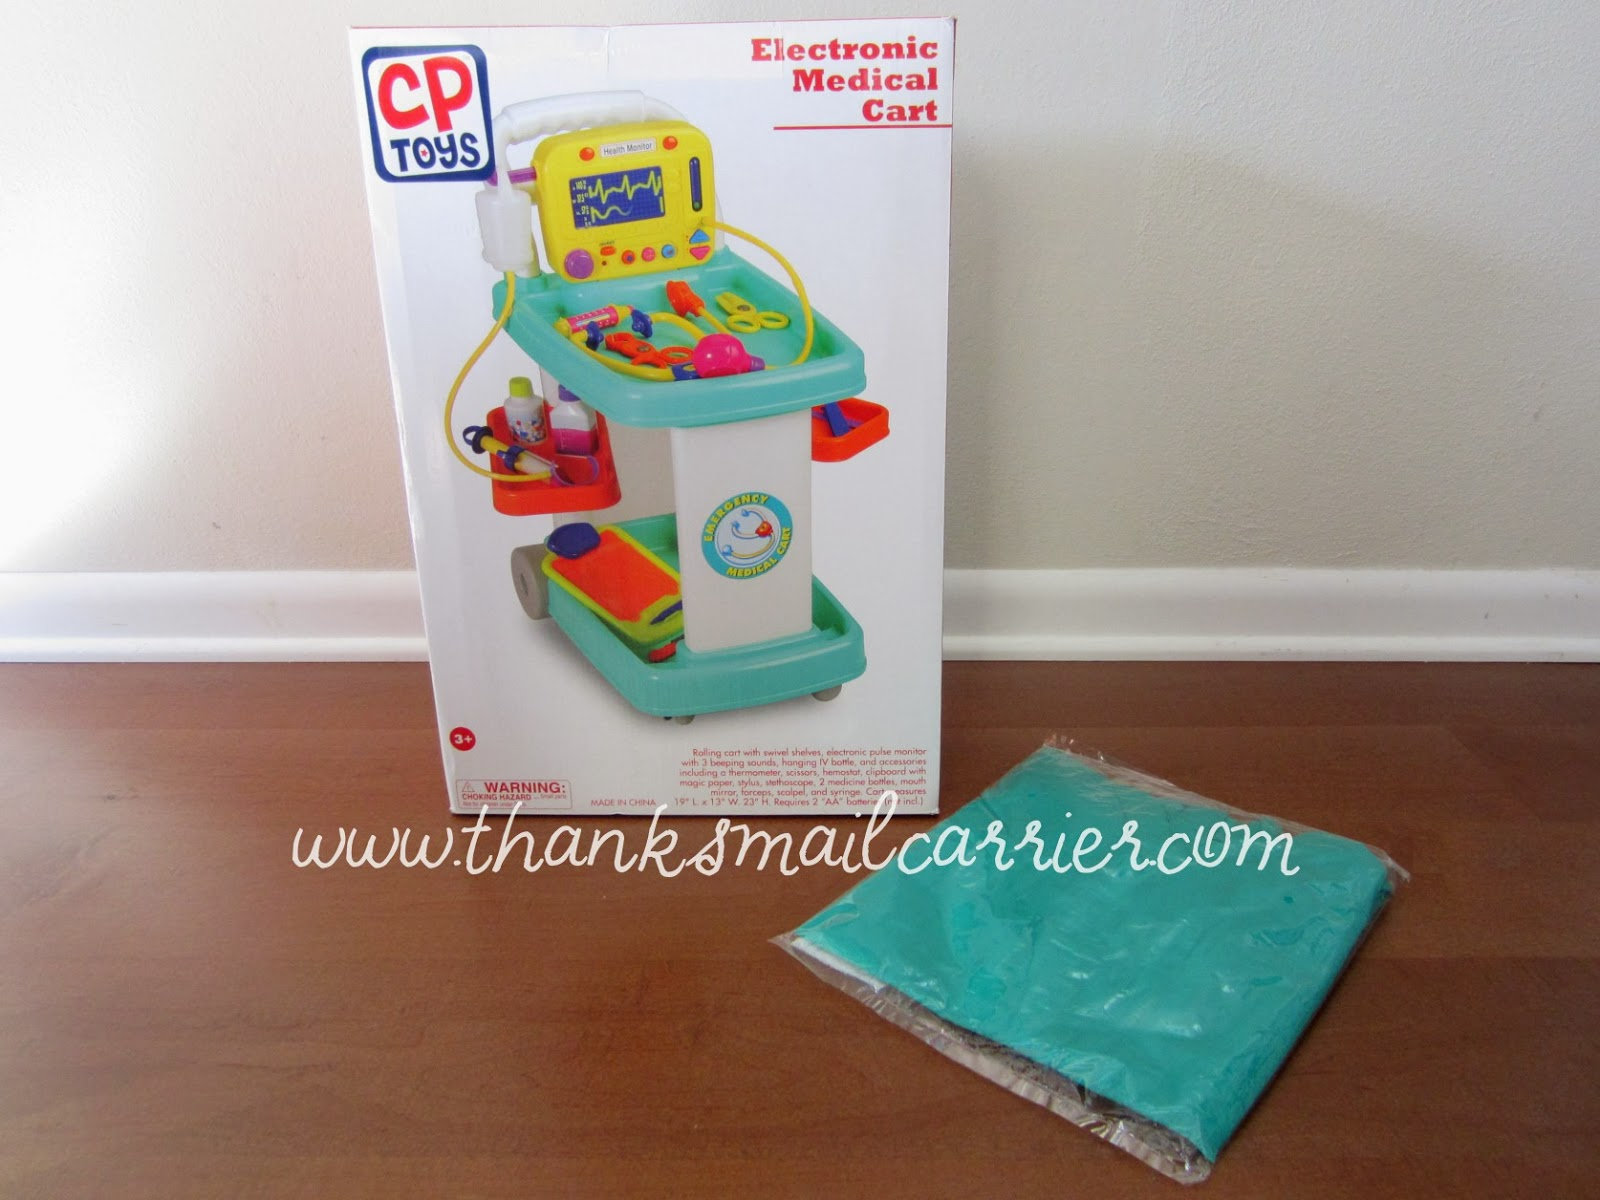 CP Toys Electronic Medical Cart